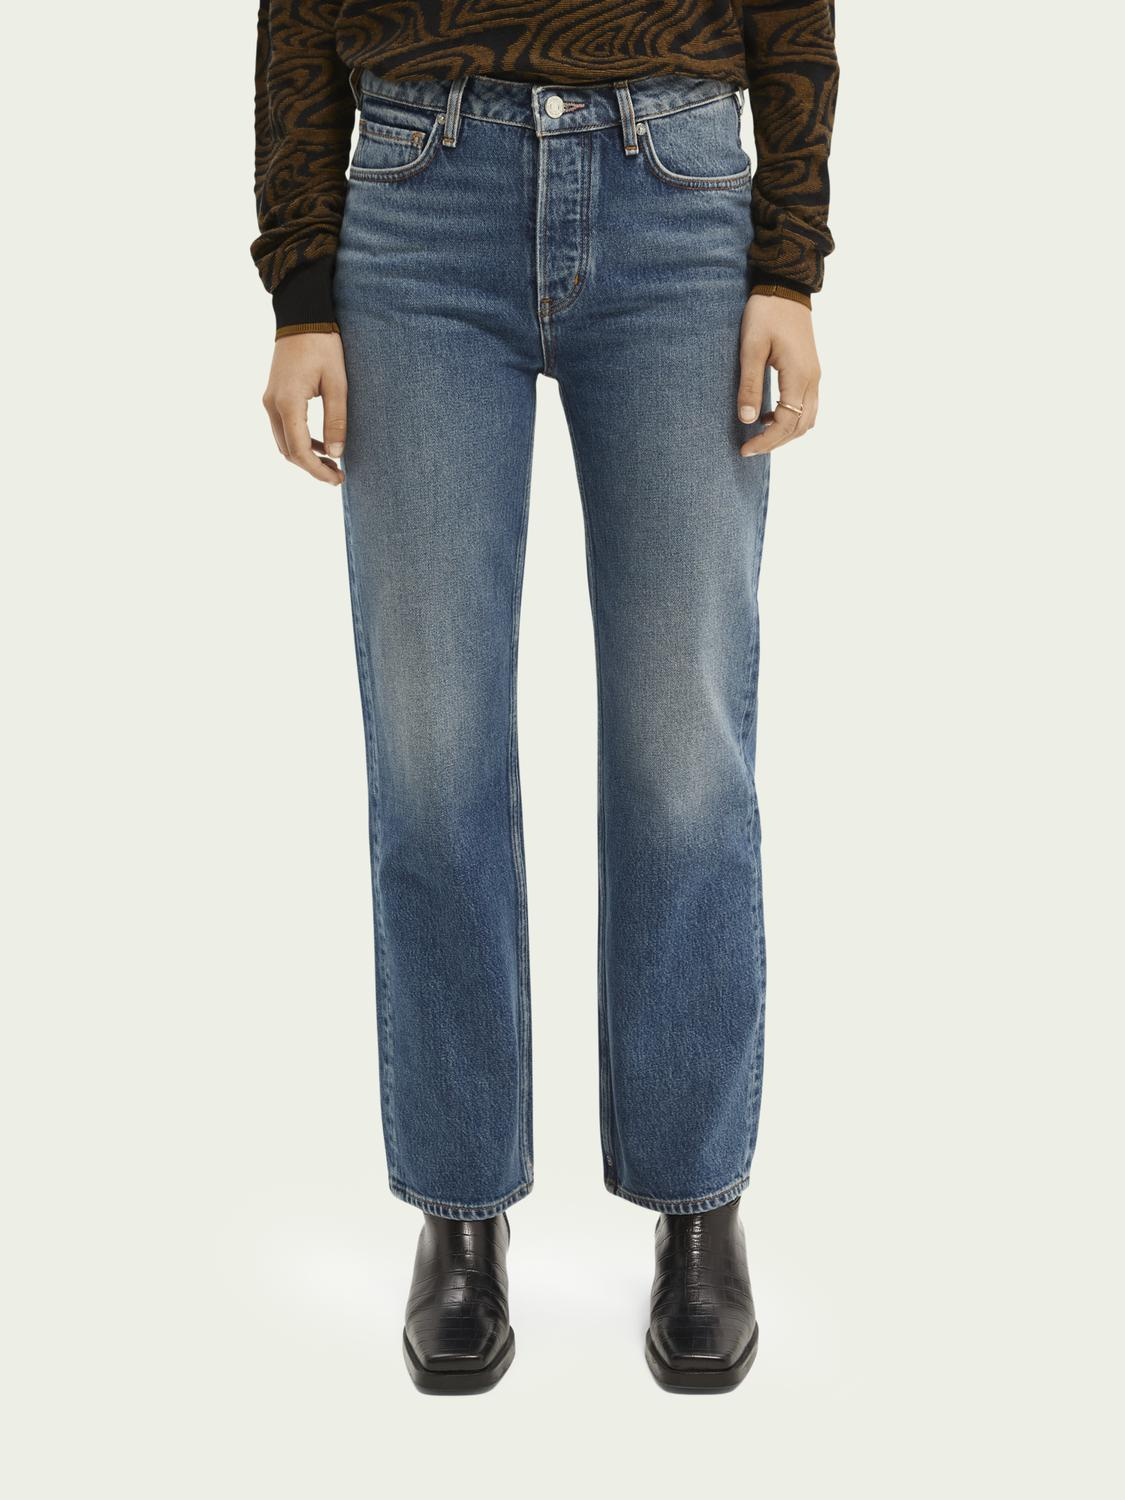 The Sky high-rise straight-fit jeans — Take A Break